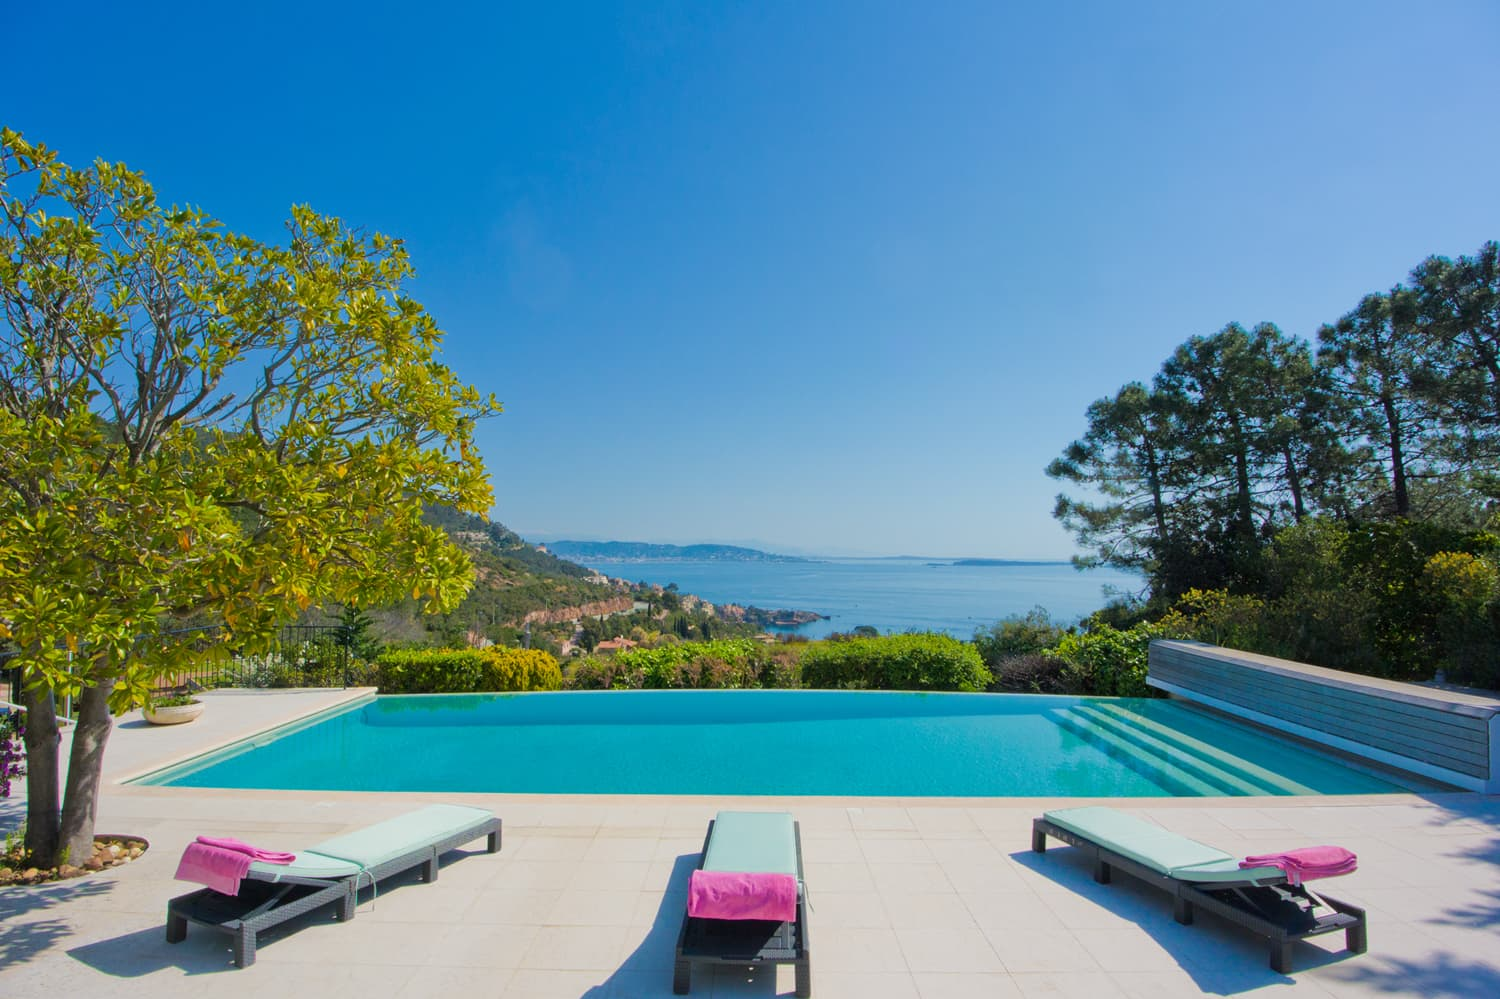 Holiday villa on the French Riviera with private pool and fabulous views | Villa Saint-Honorat